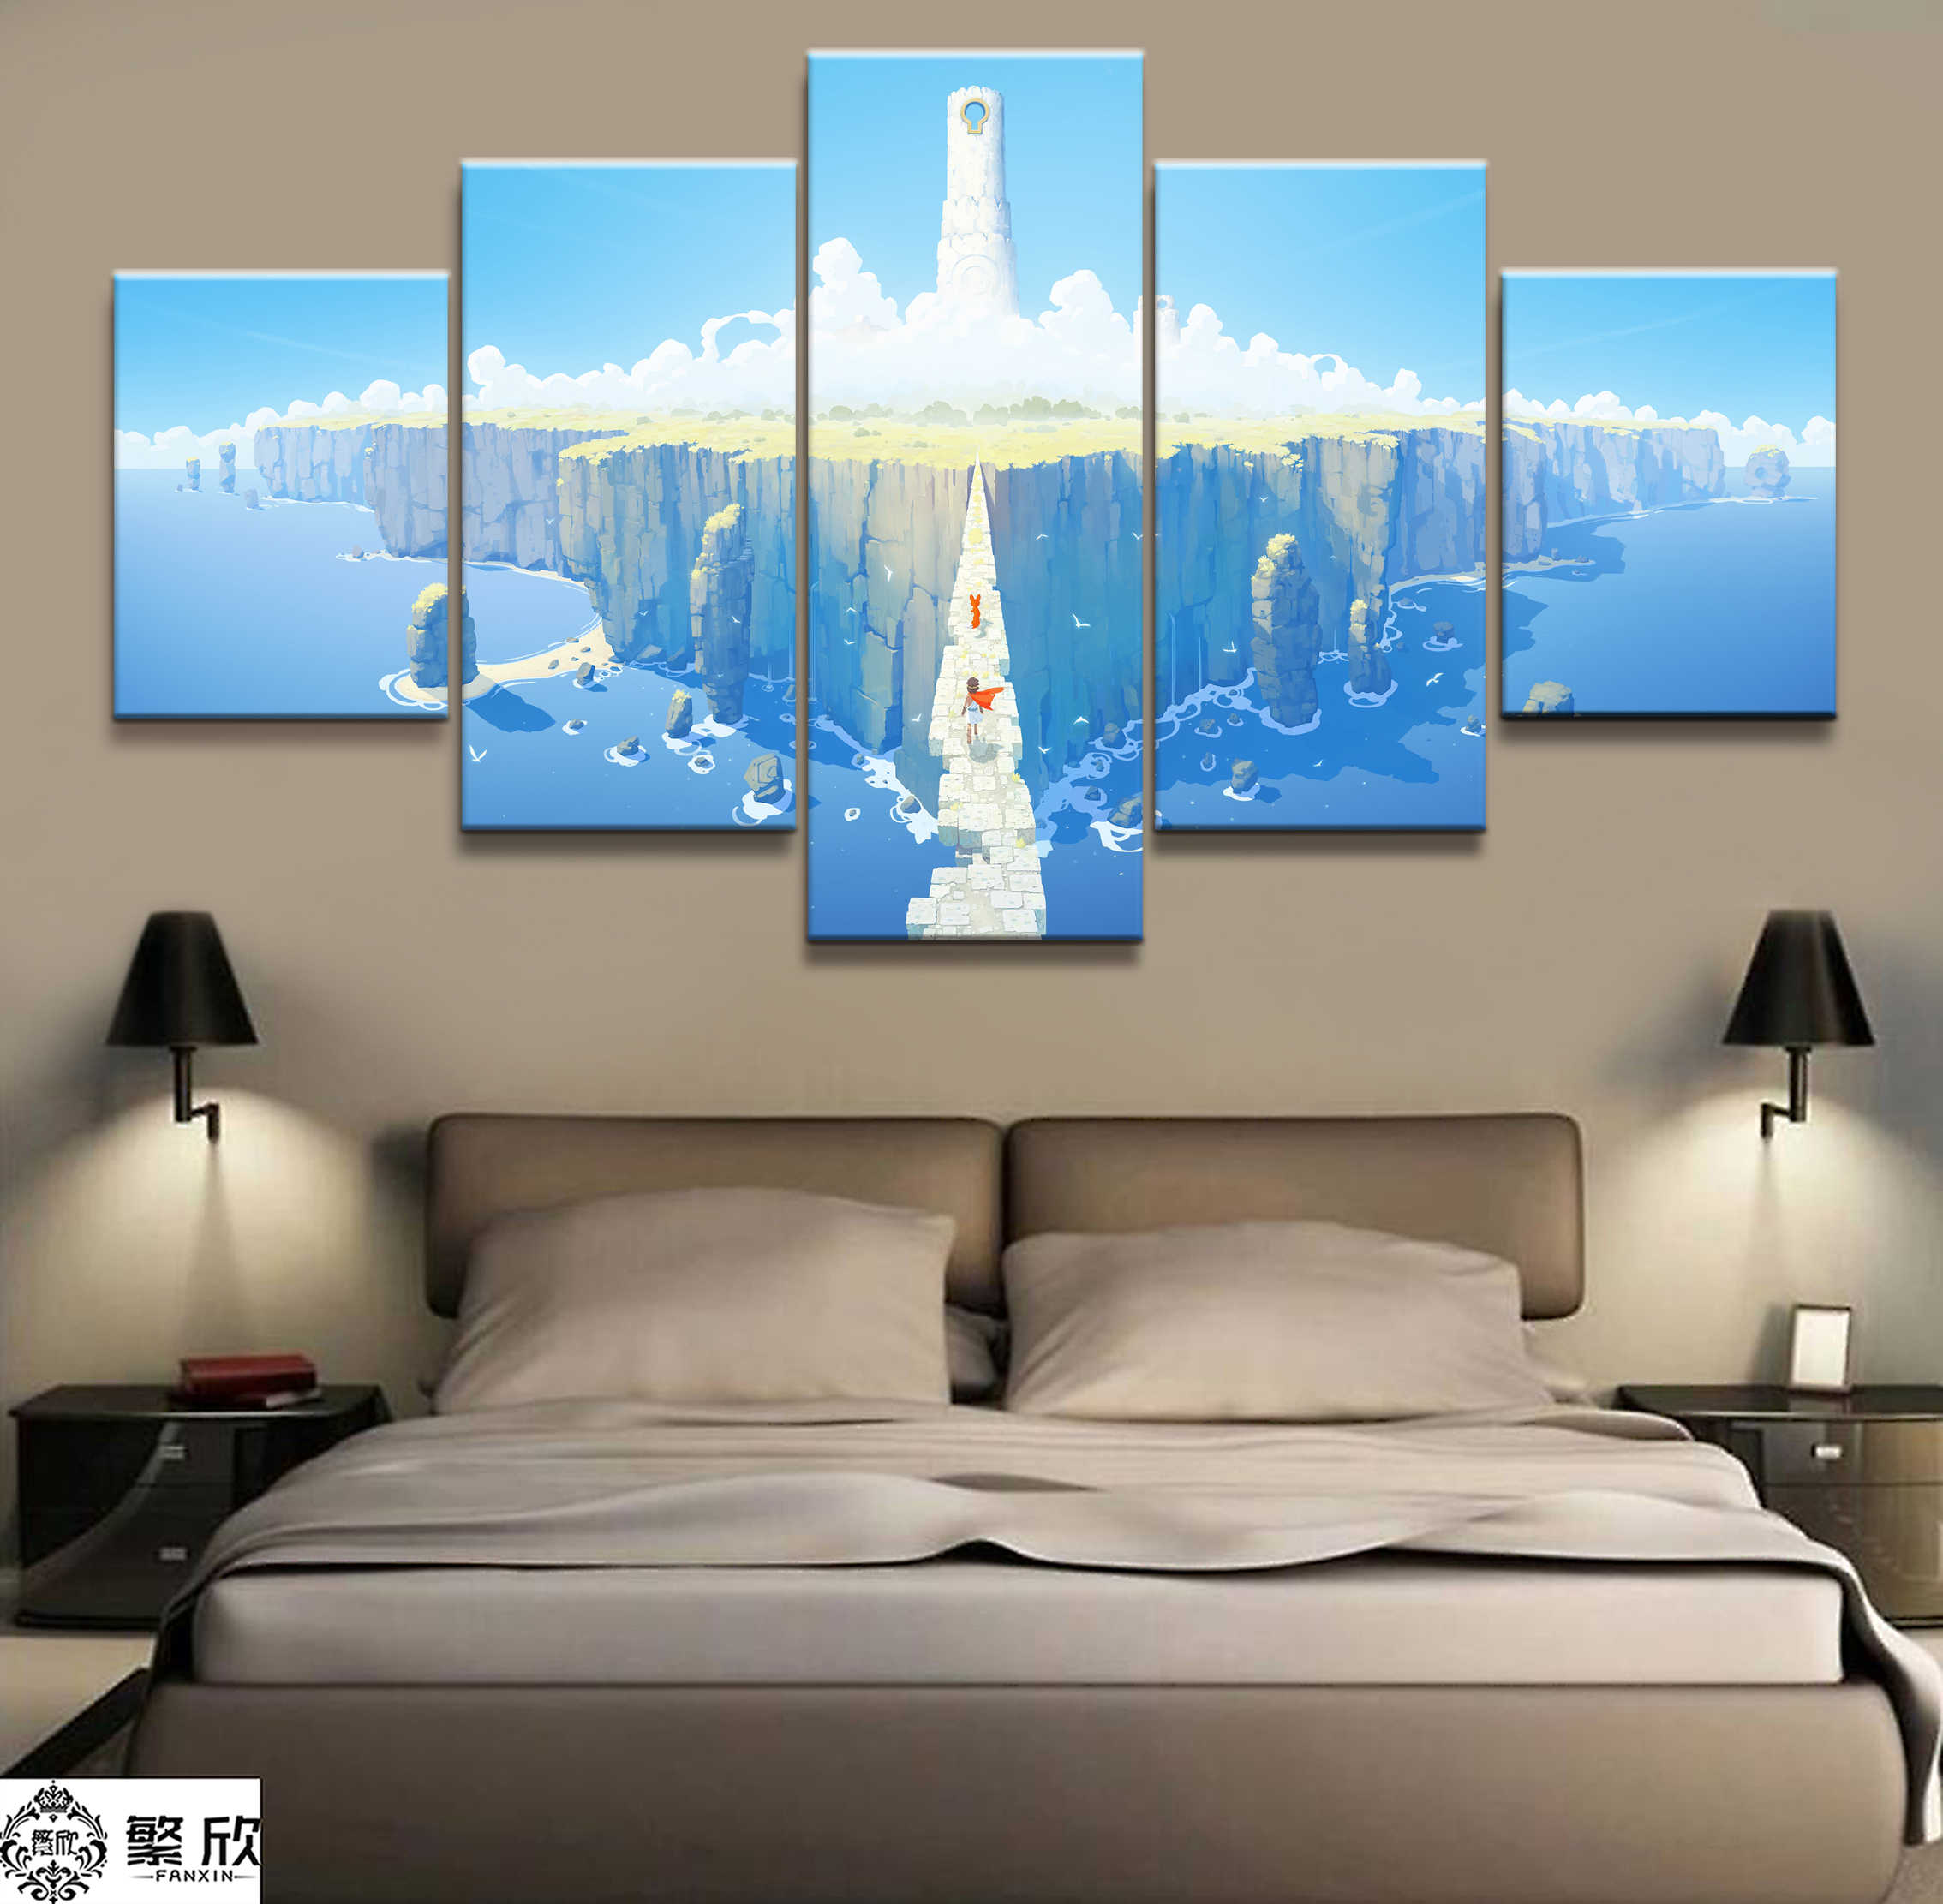 Home Decor Modular Canvas Picture 5 Piece RiME Game Poster Painting Art Wall For Home Canvas Painting Wholesale